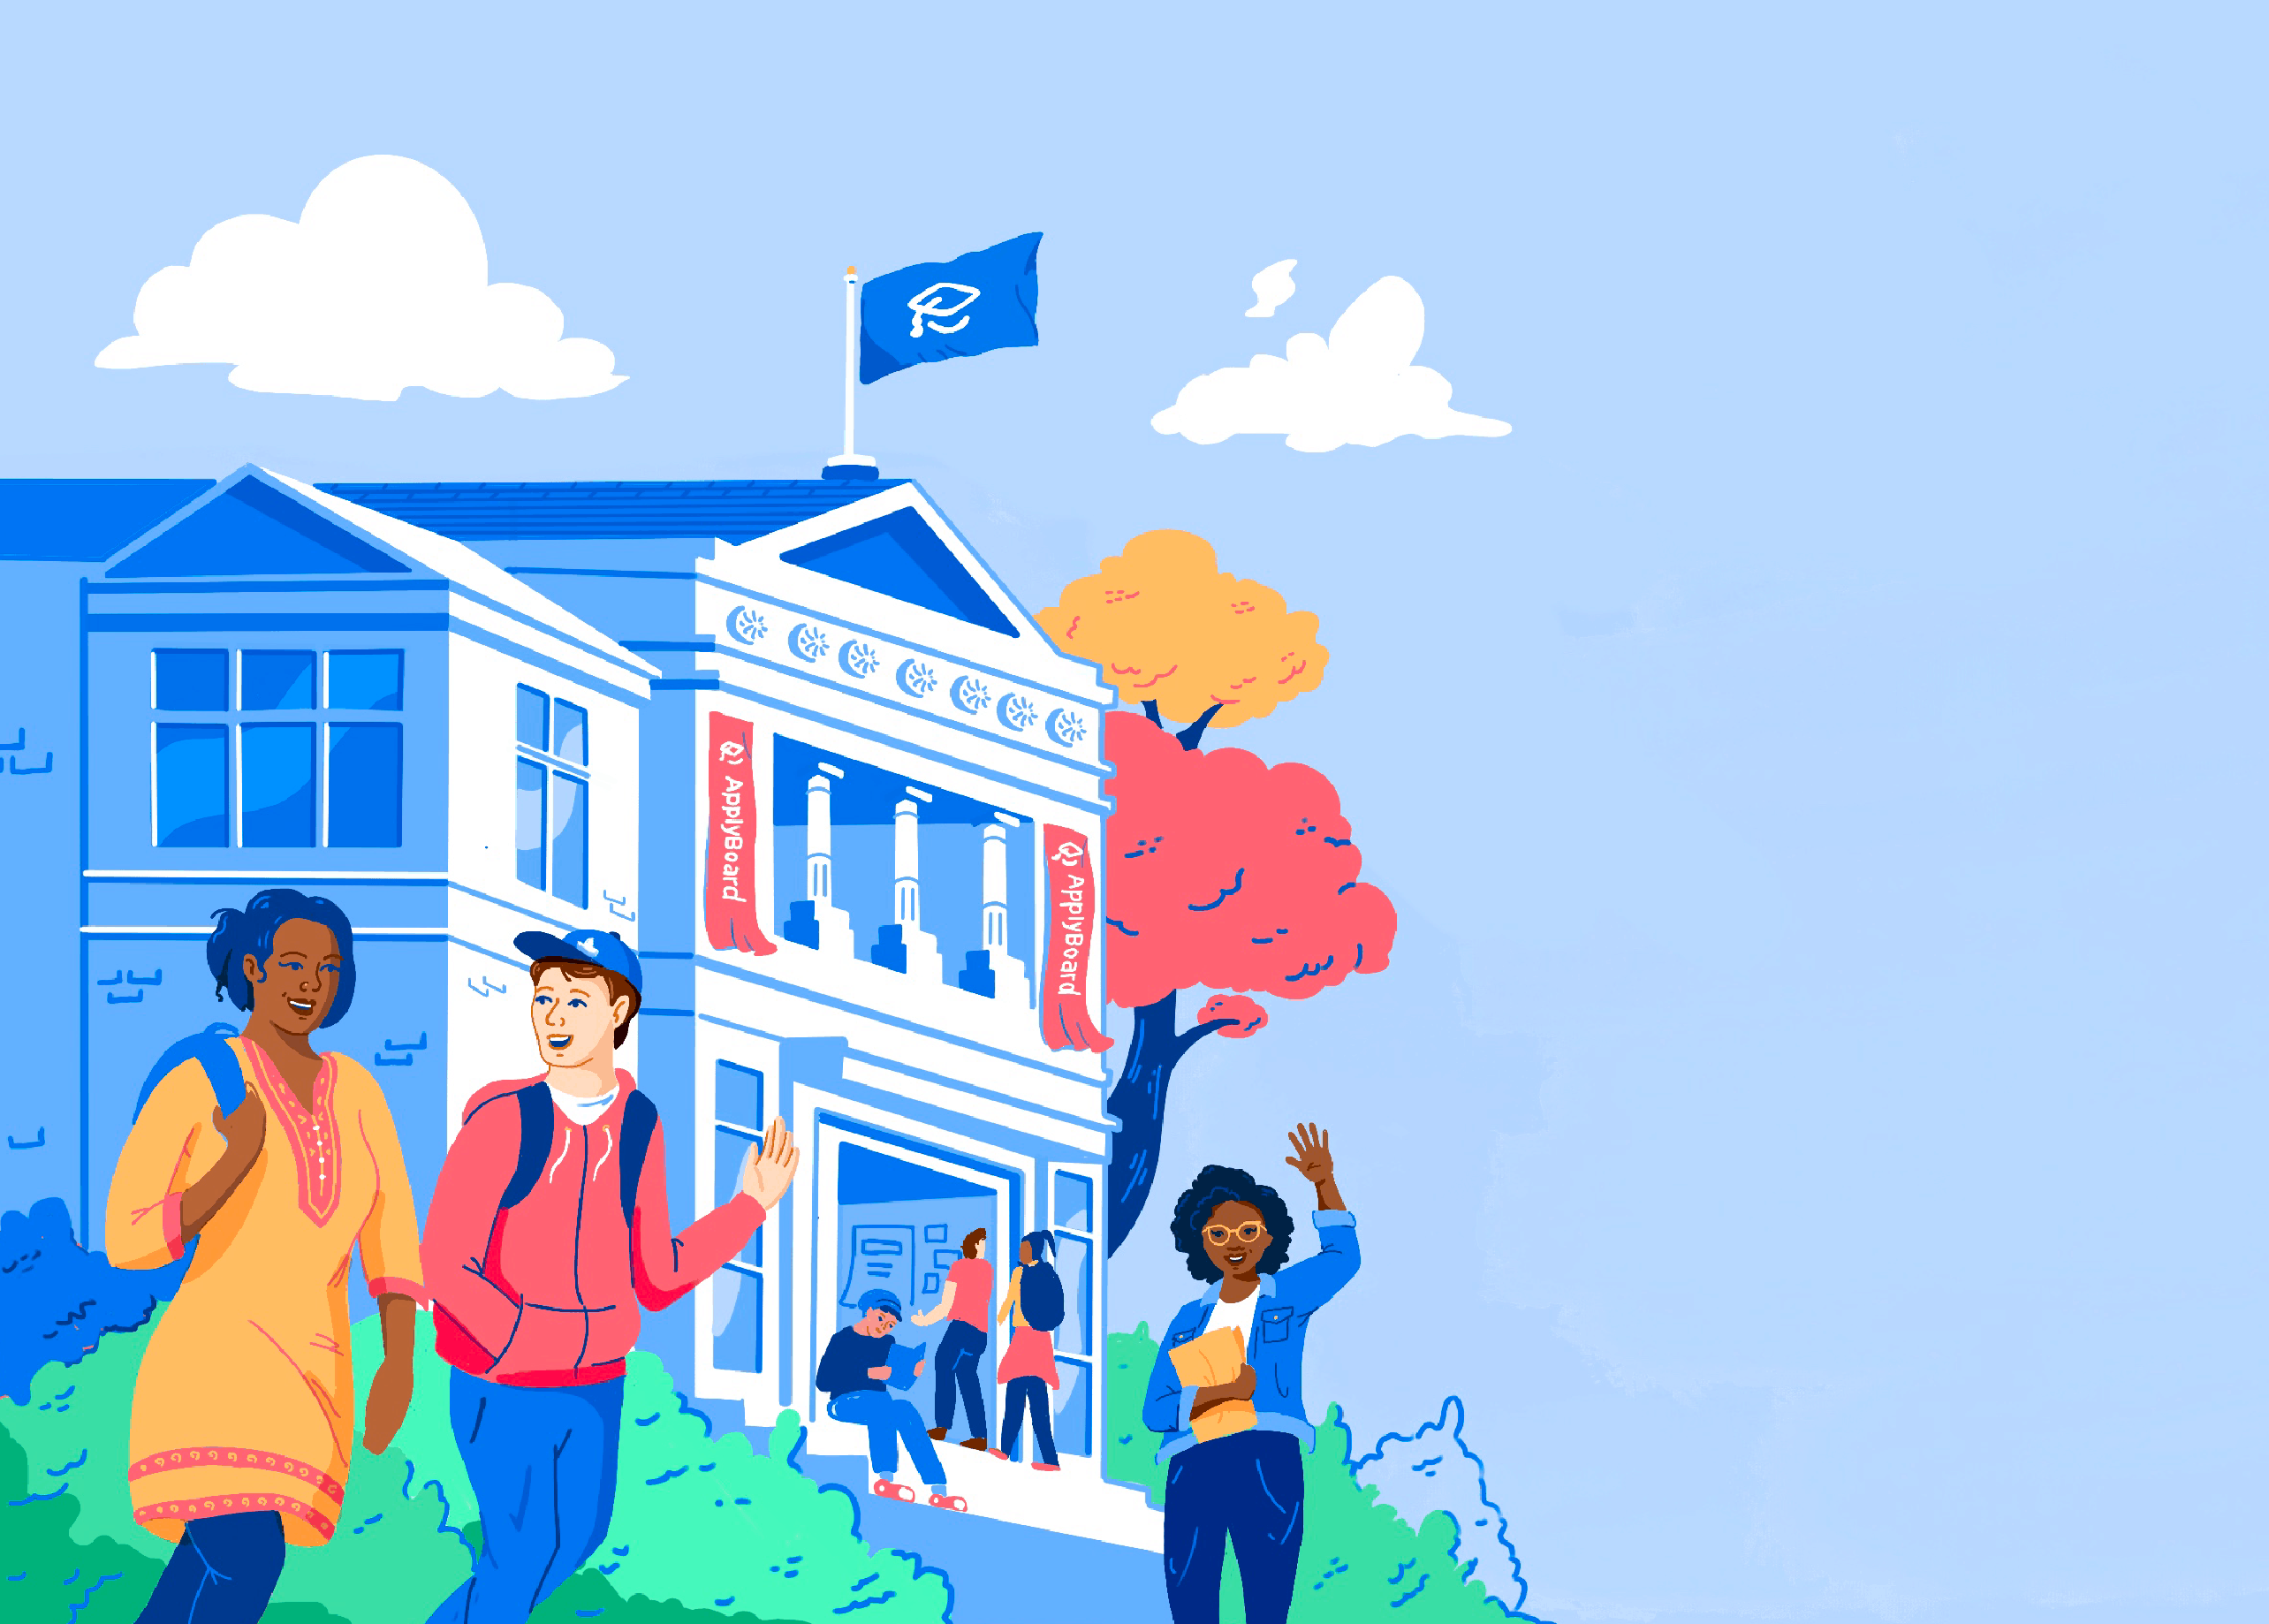 Illustration of students on school campus